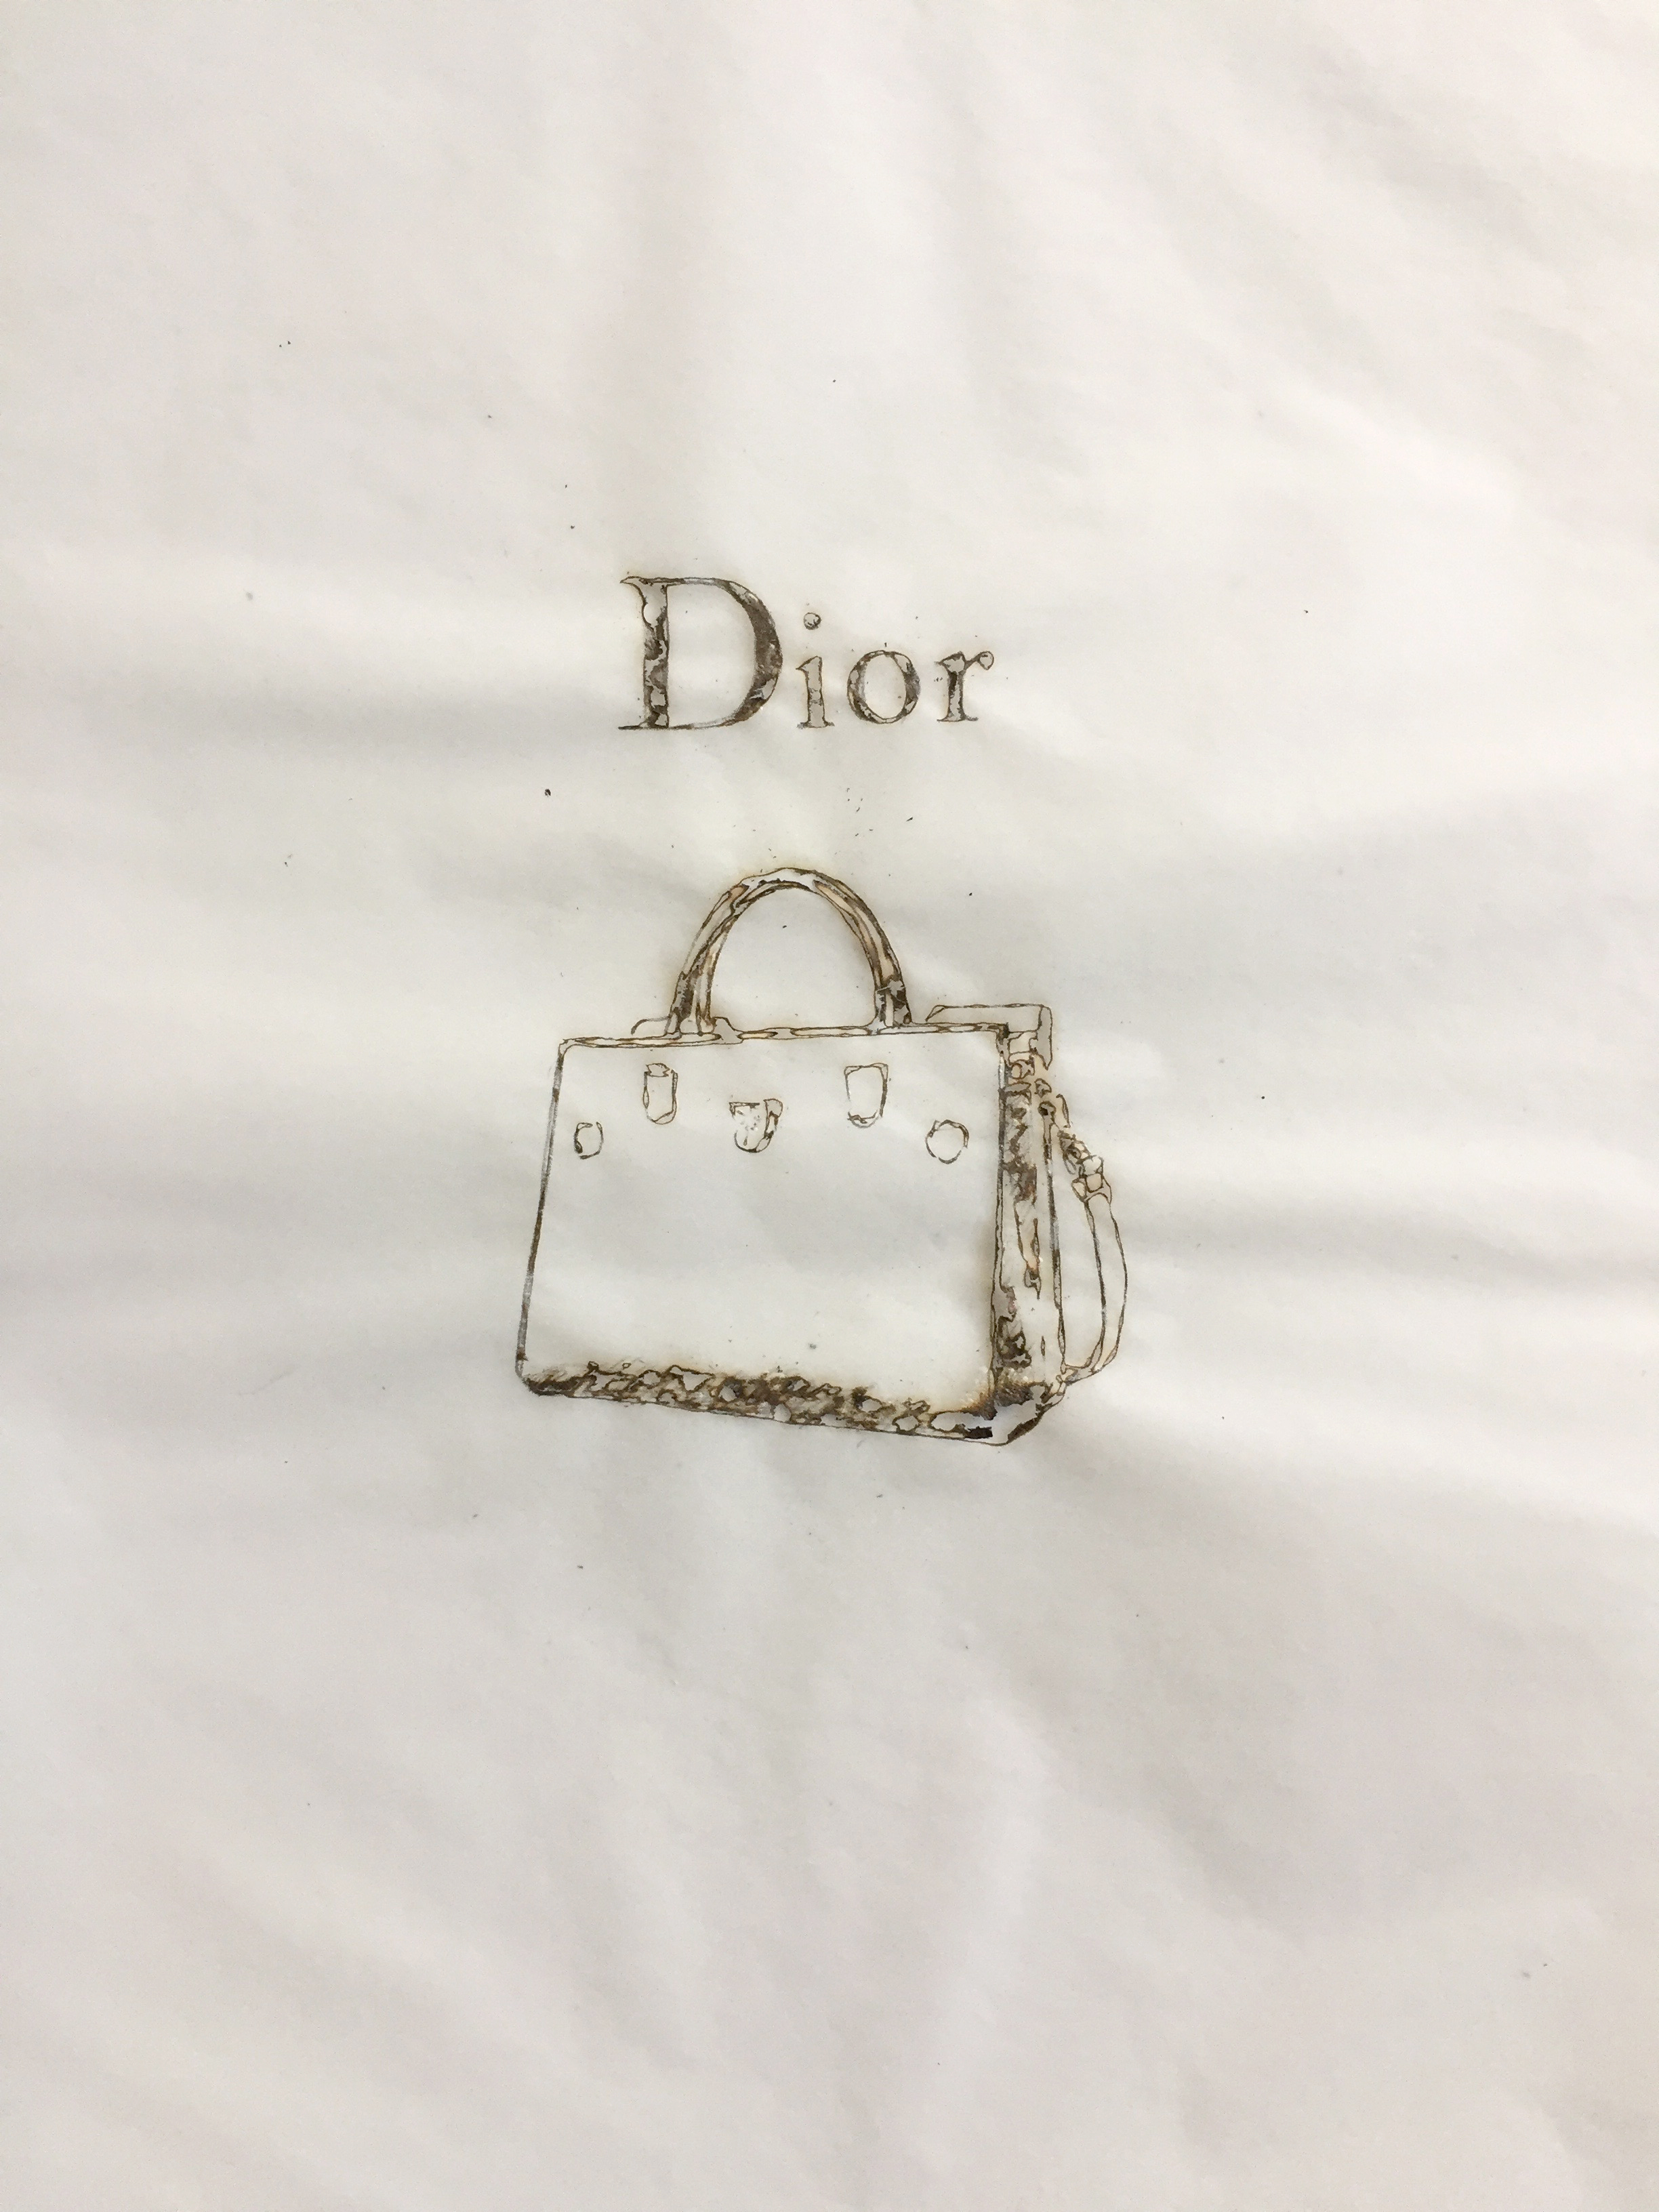 Davide Cantoni, drawing 17003 ( Dior bag) , 2017 , burned paper, 12 x 9 inches